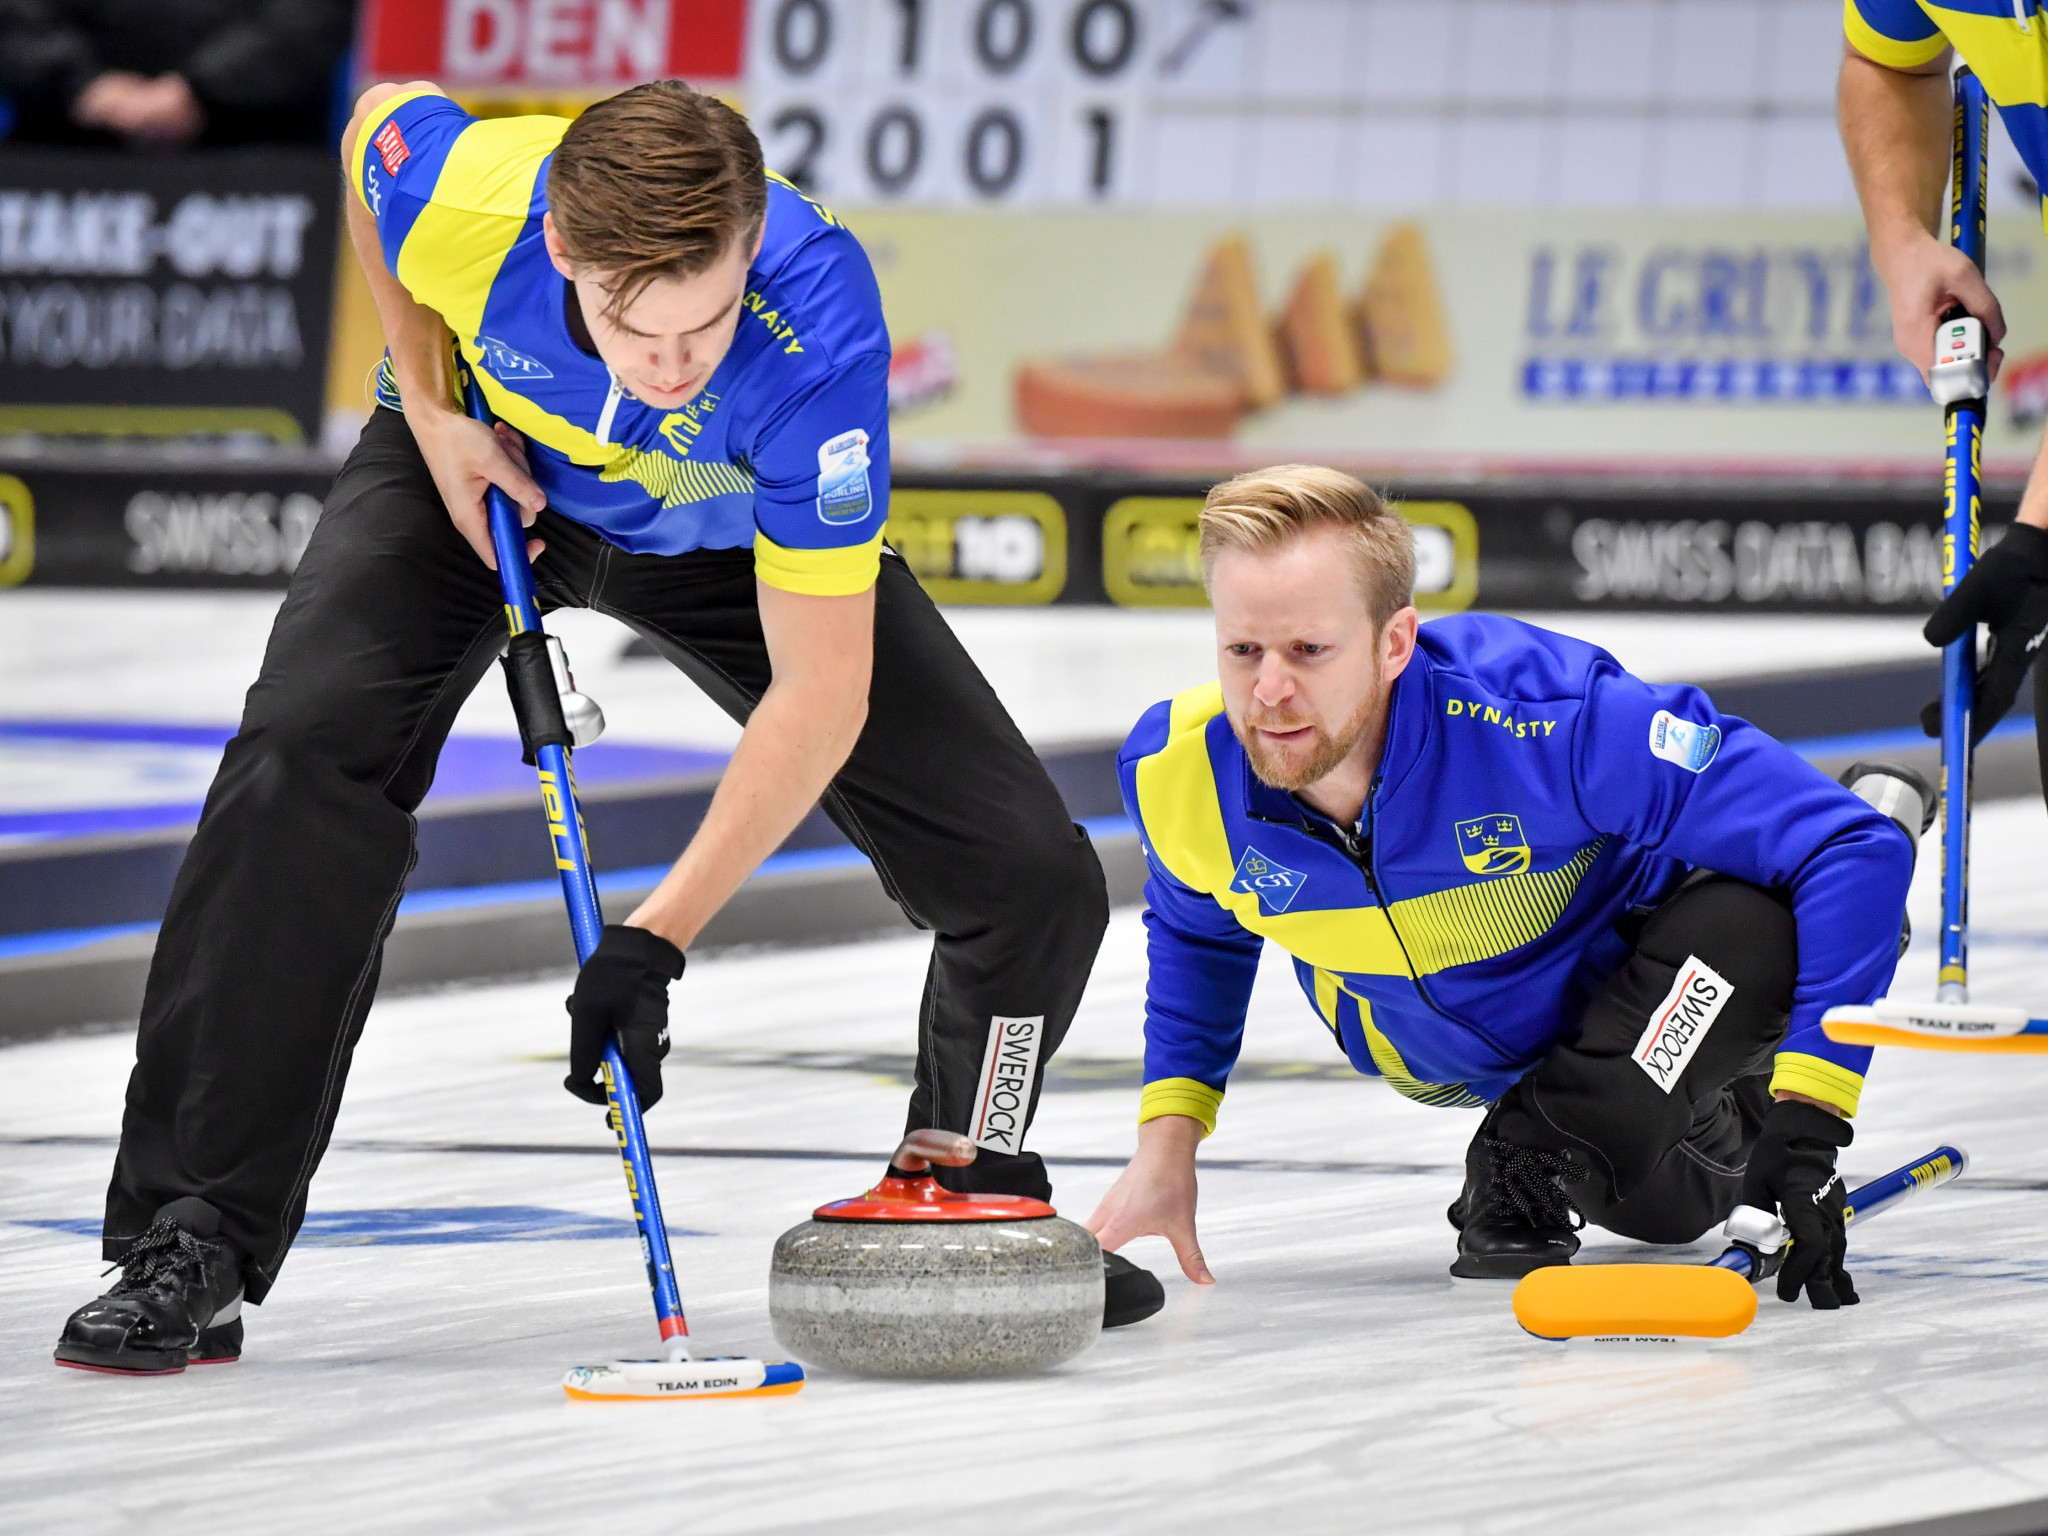 Sweden will be looking to defend their title in Calgary next year ©Getty Images